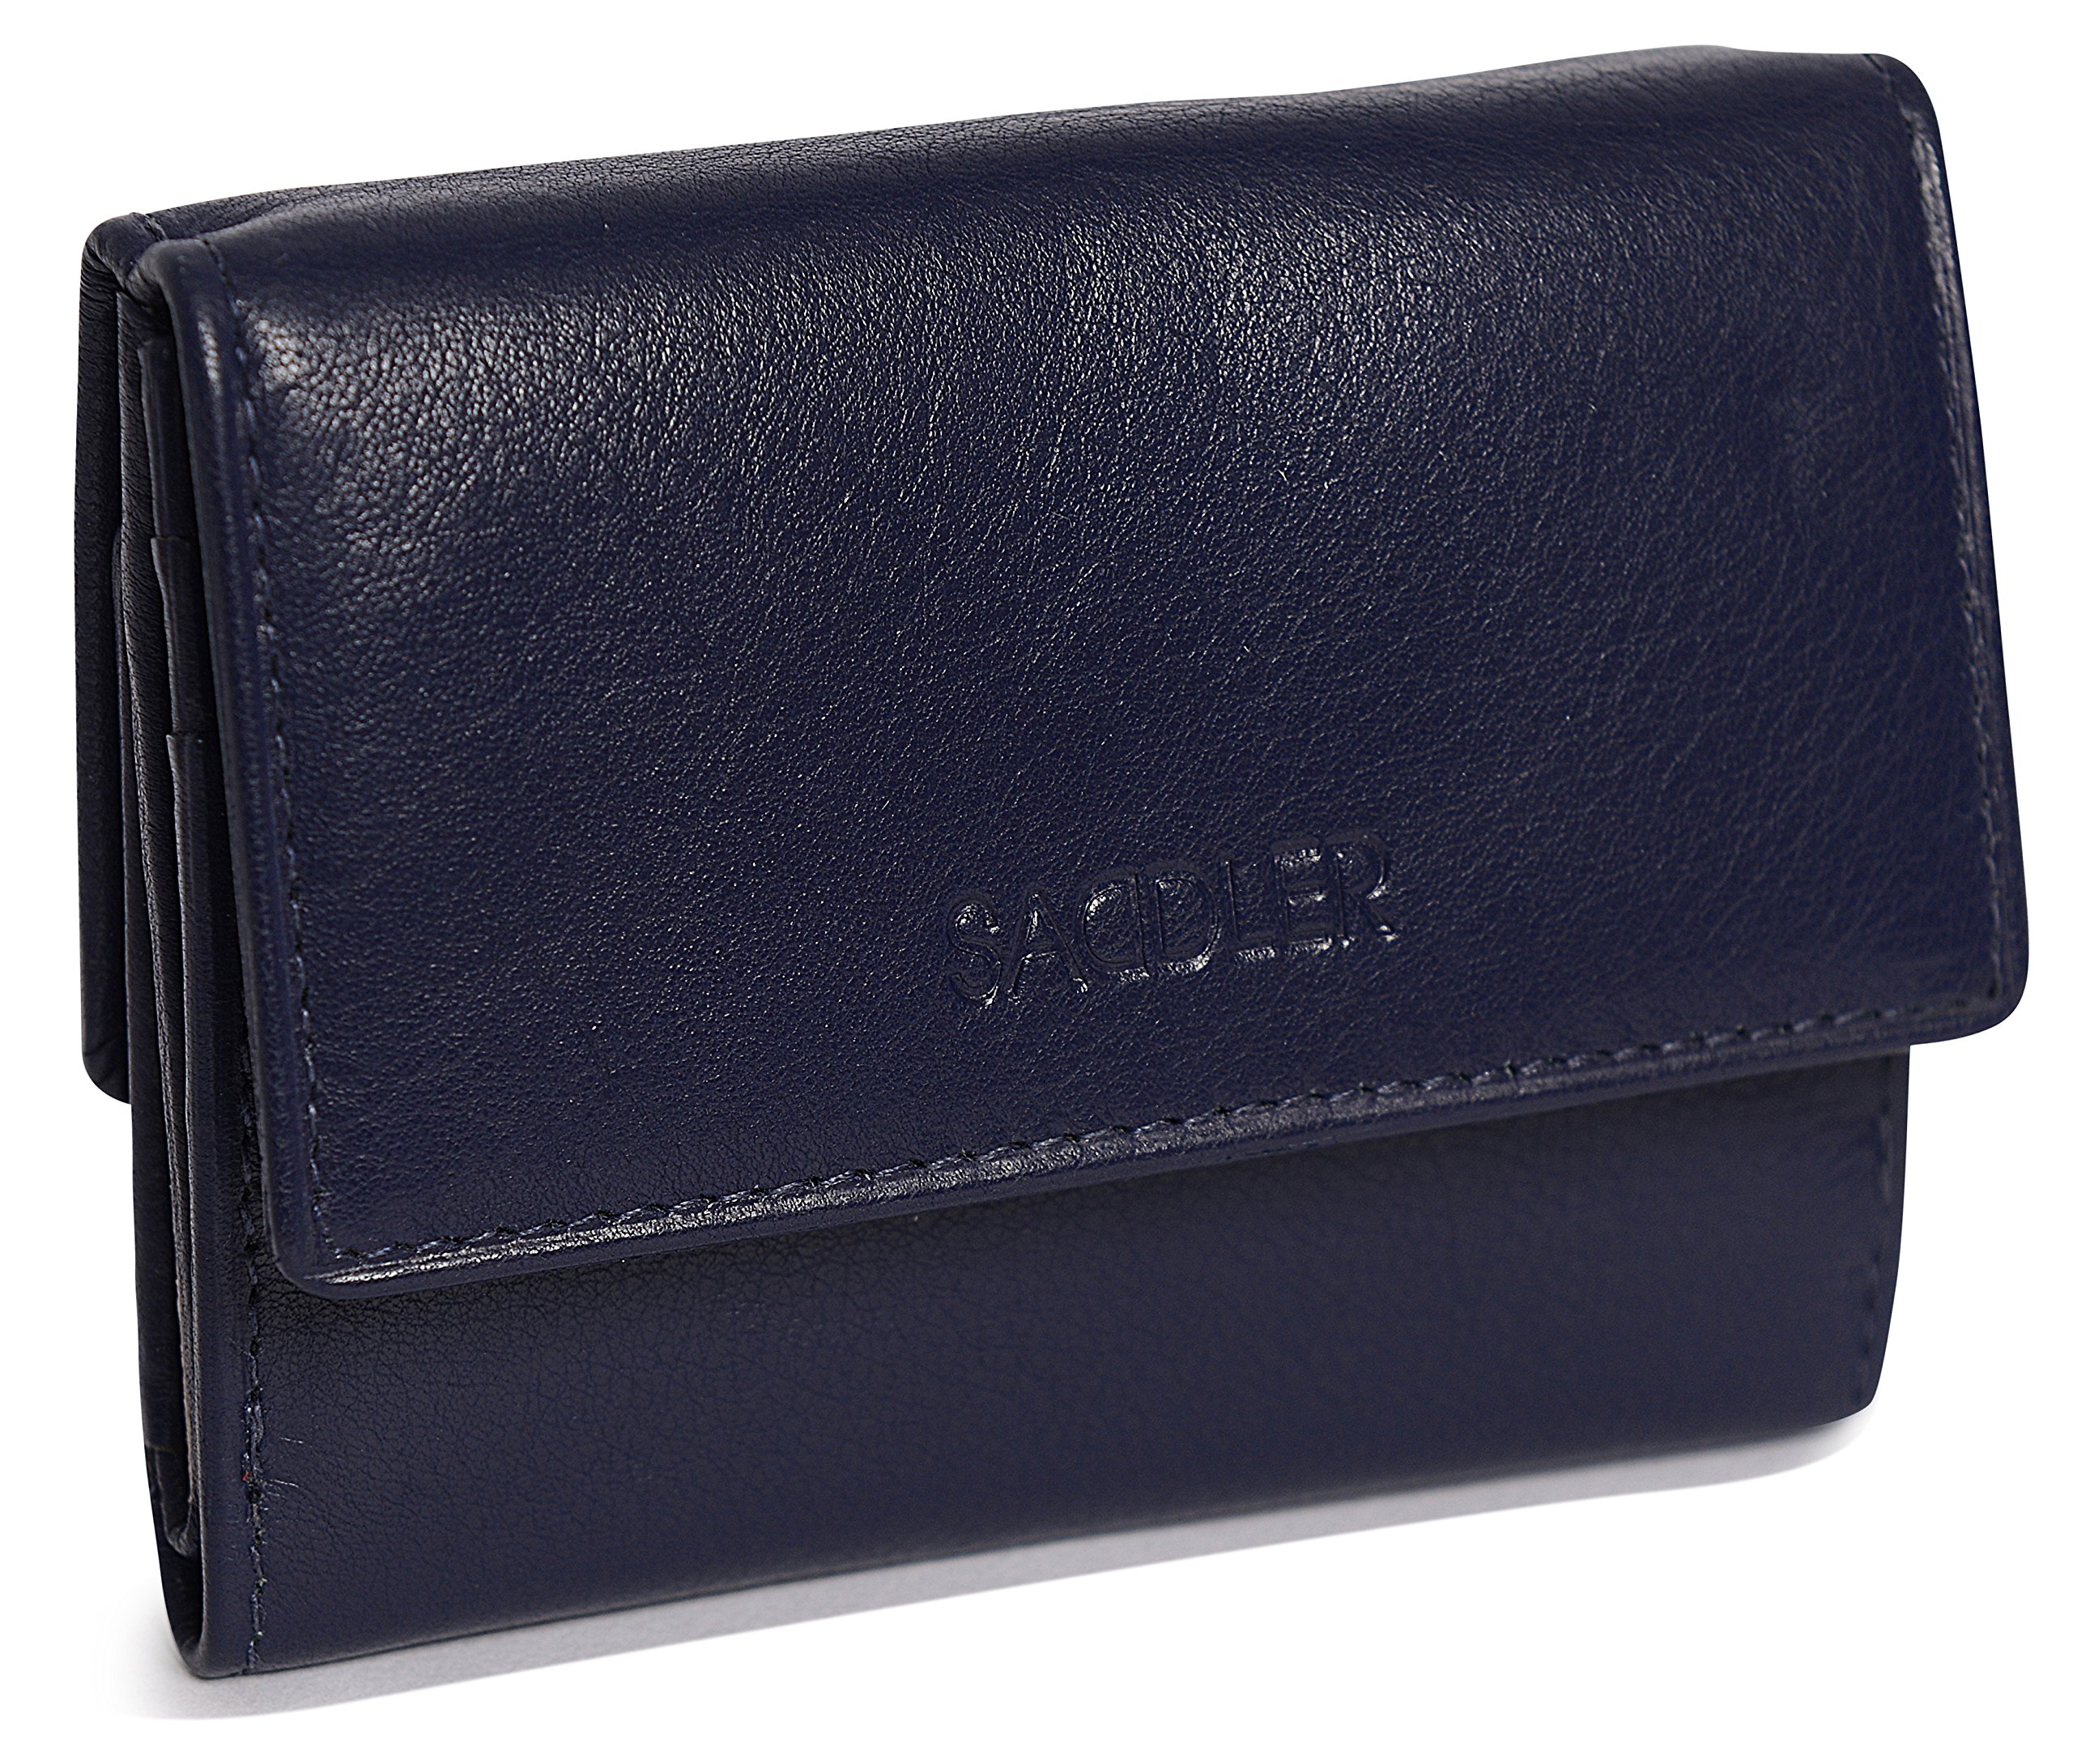 SADDLER Womens Real Leather Compact Double Flap Wallet Coin Purse - Peacoat Blue